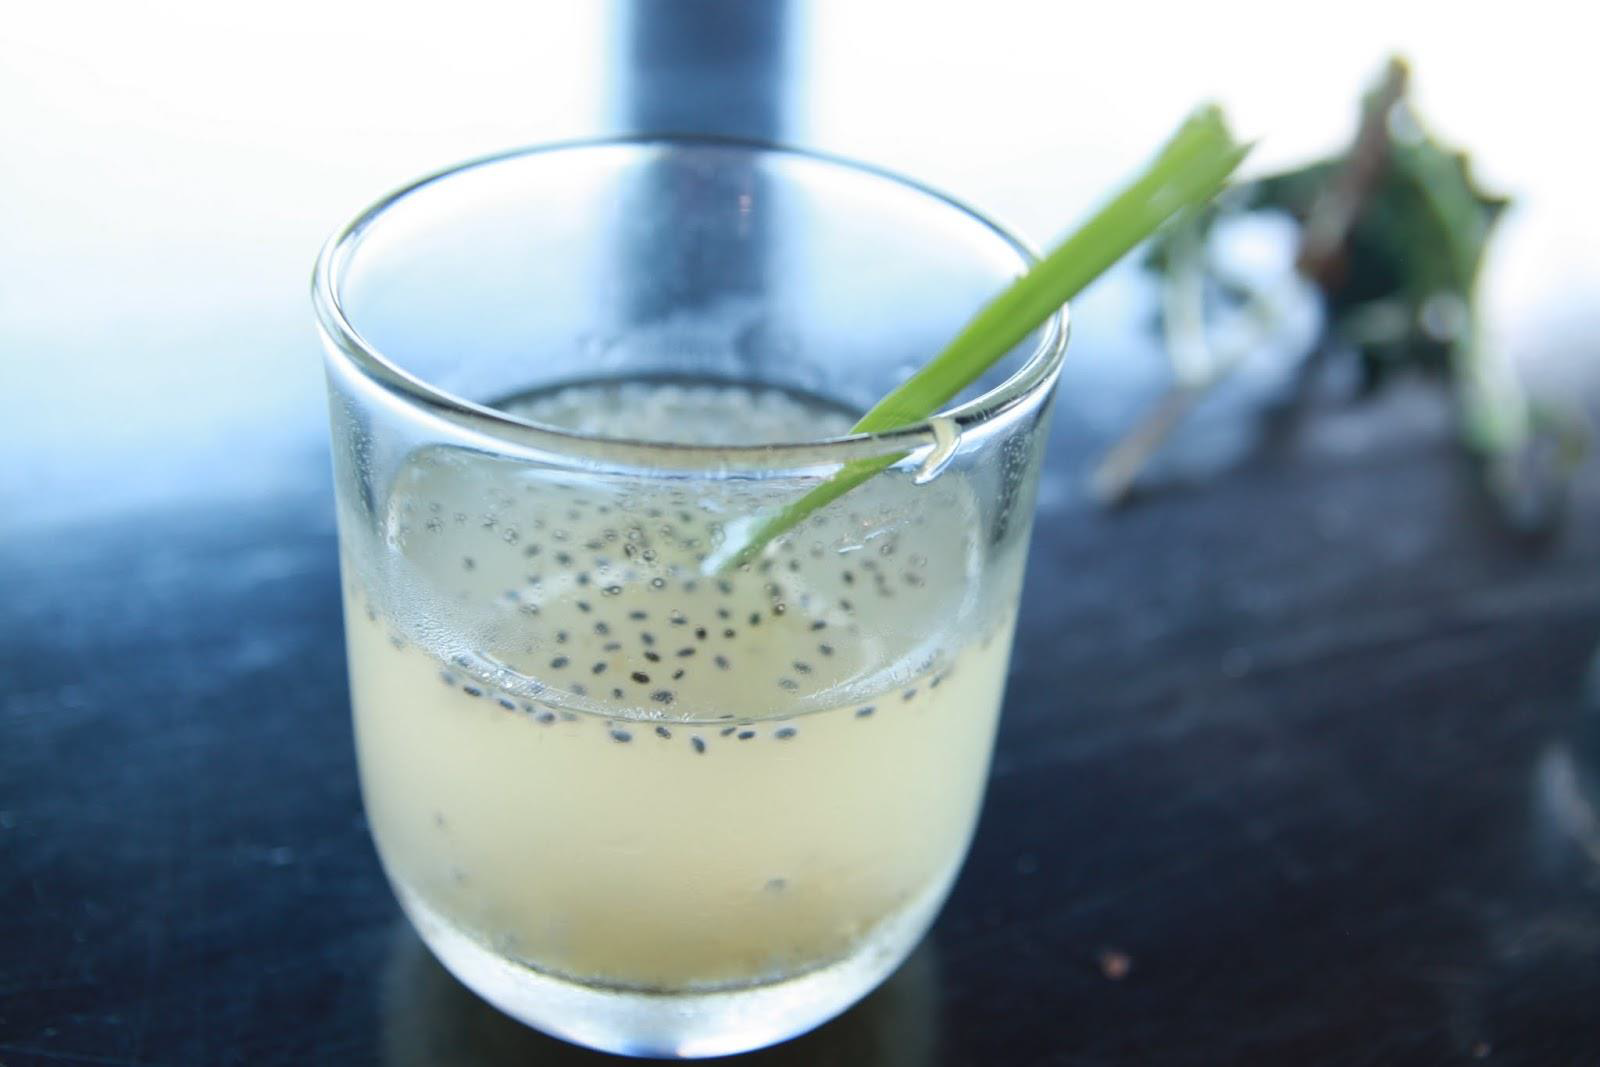 LEMON GRASS WATER KEFIR